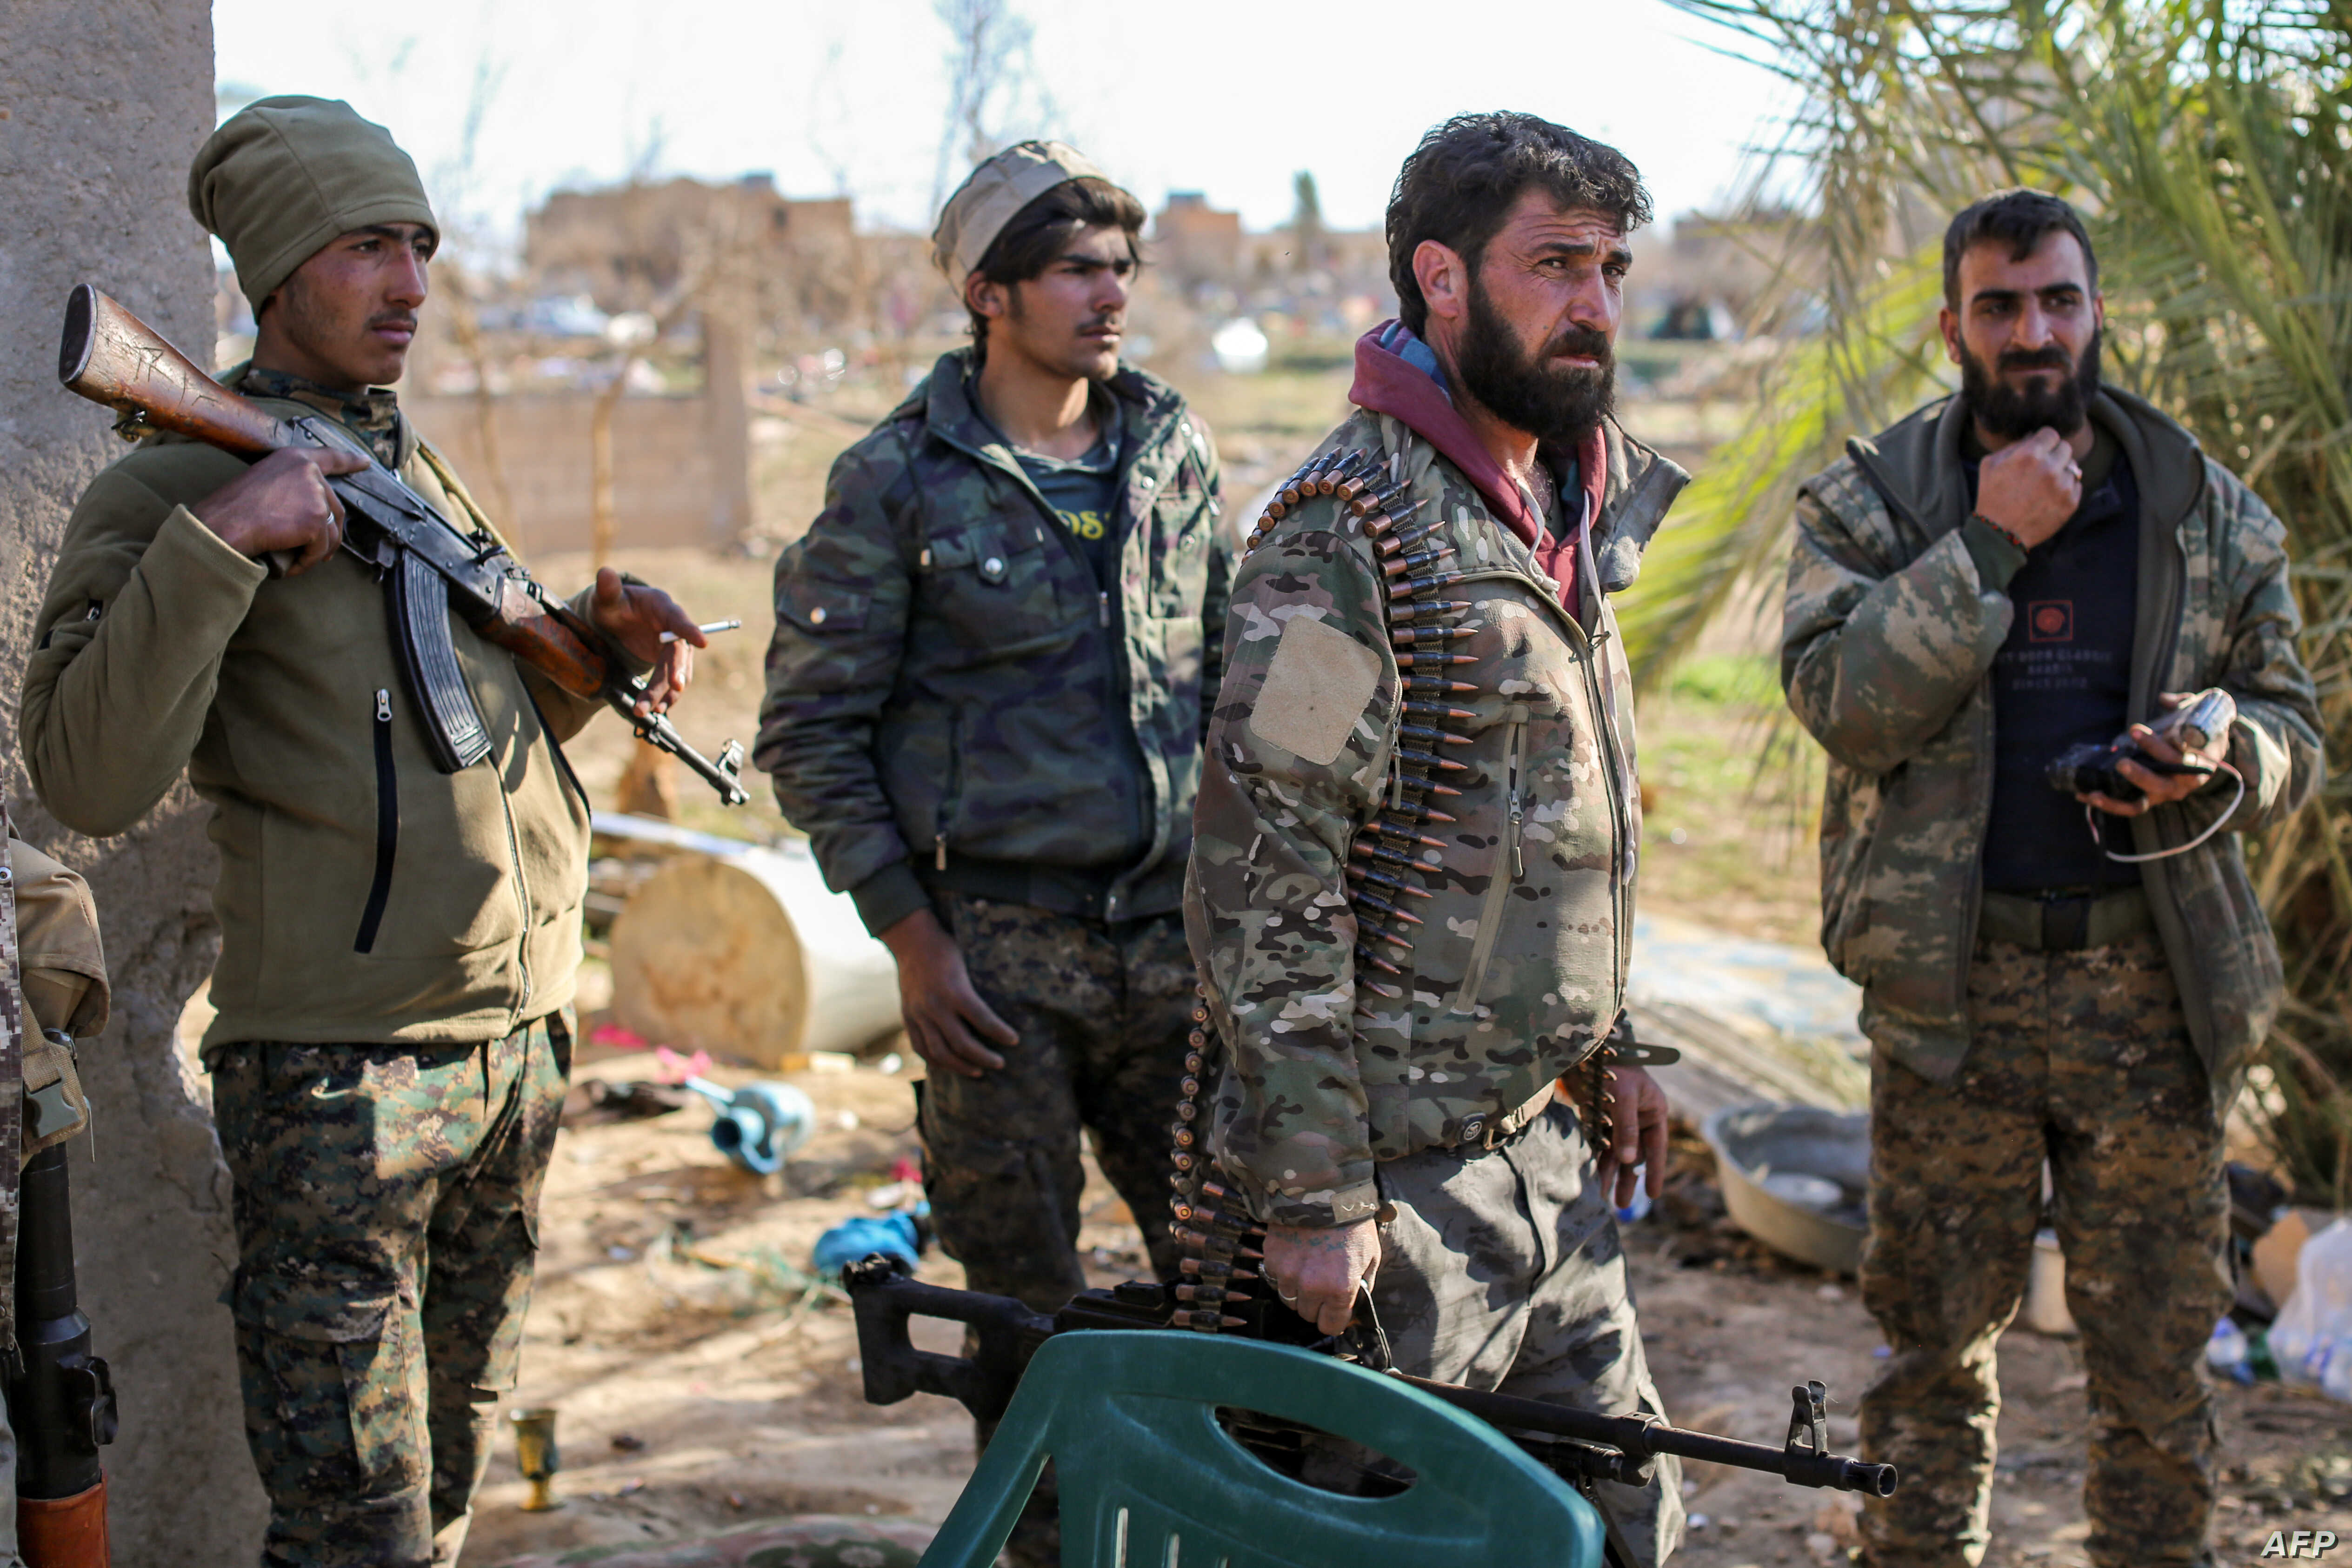 Fighters with the U.S.-backed Syrian Democratic Forces (SDF) check a makeshift camp for Islamic State (IS) group members and their families in the town of Baghuz, eastern Syria, March 9, 2019.